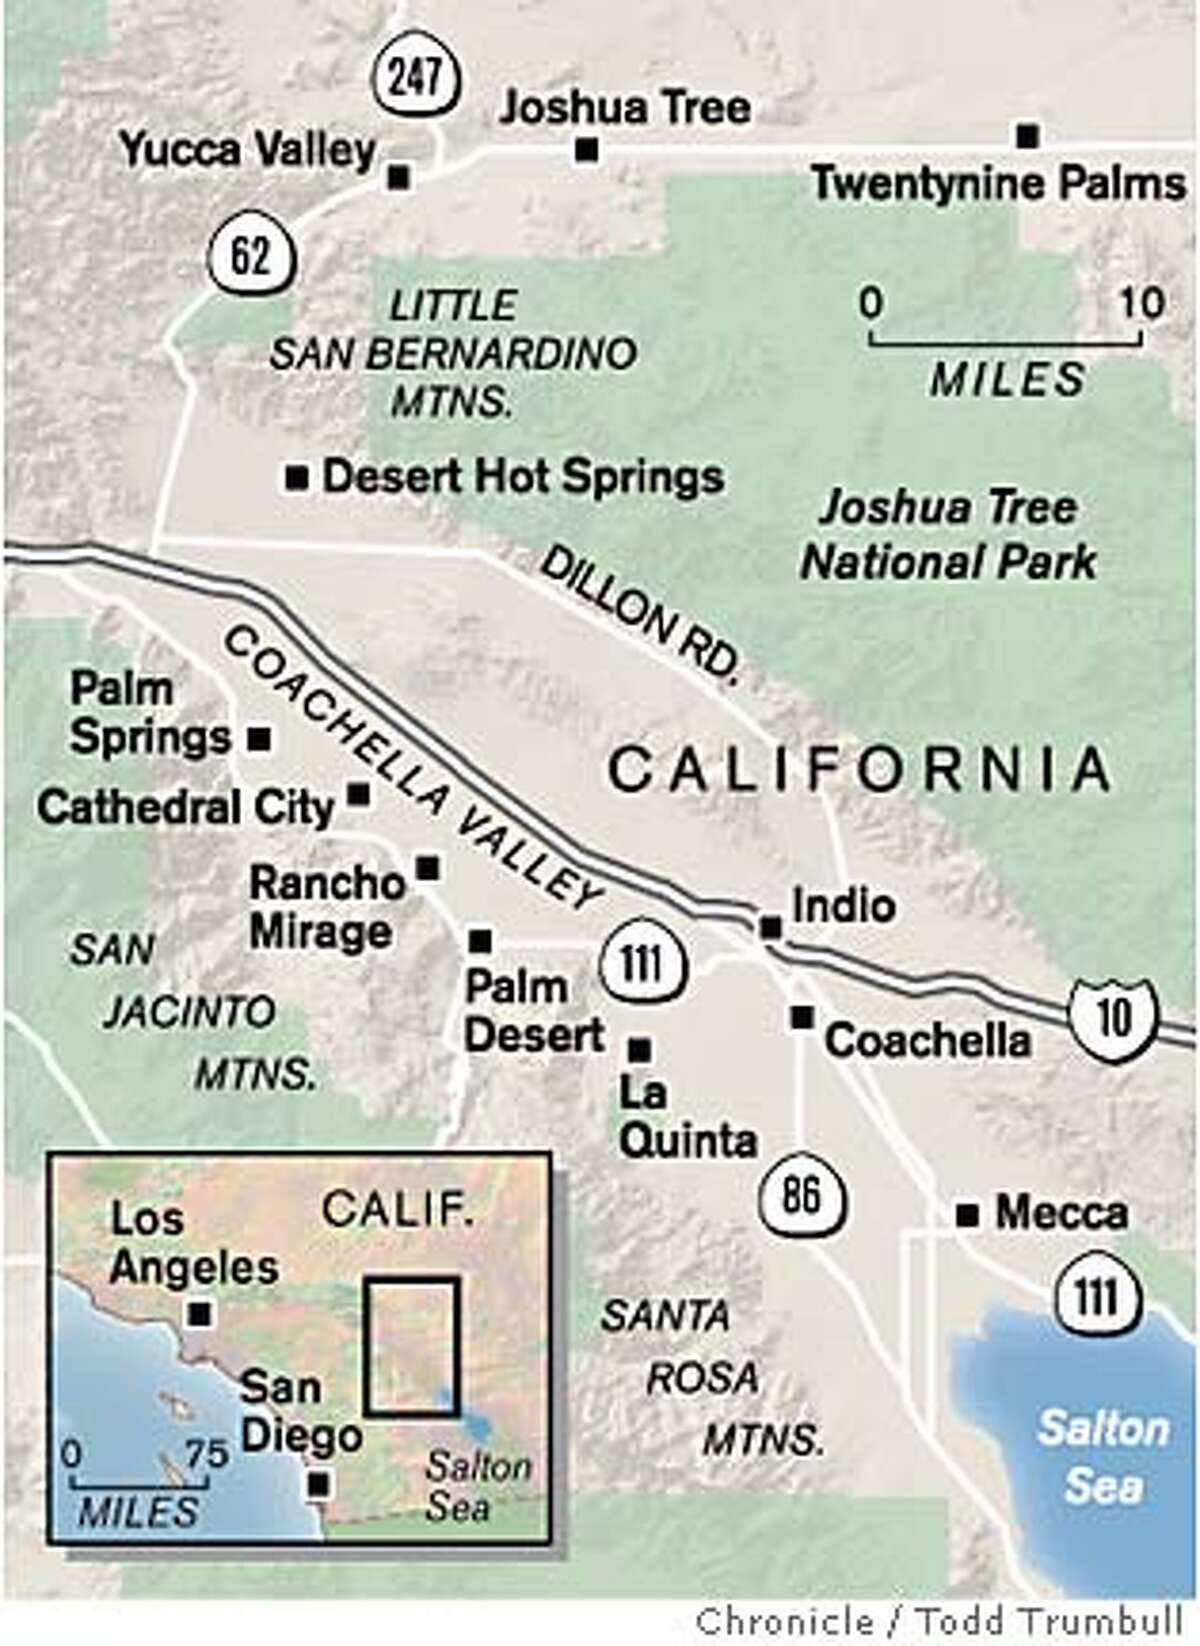 Coachella Valley. Chronicle graphic by Todd Trumbull